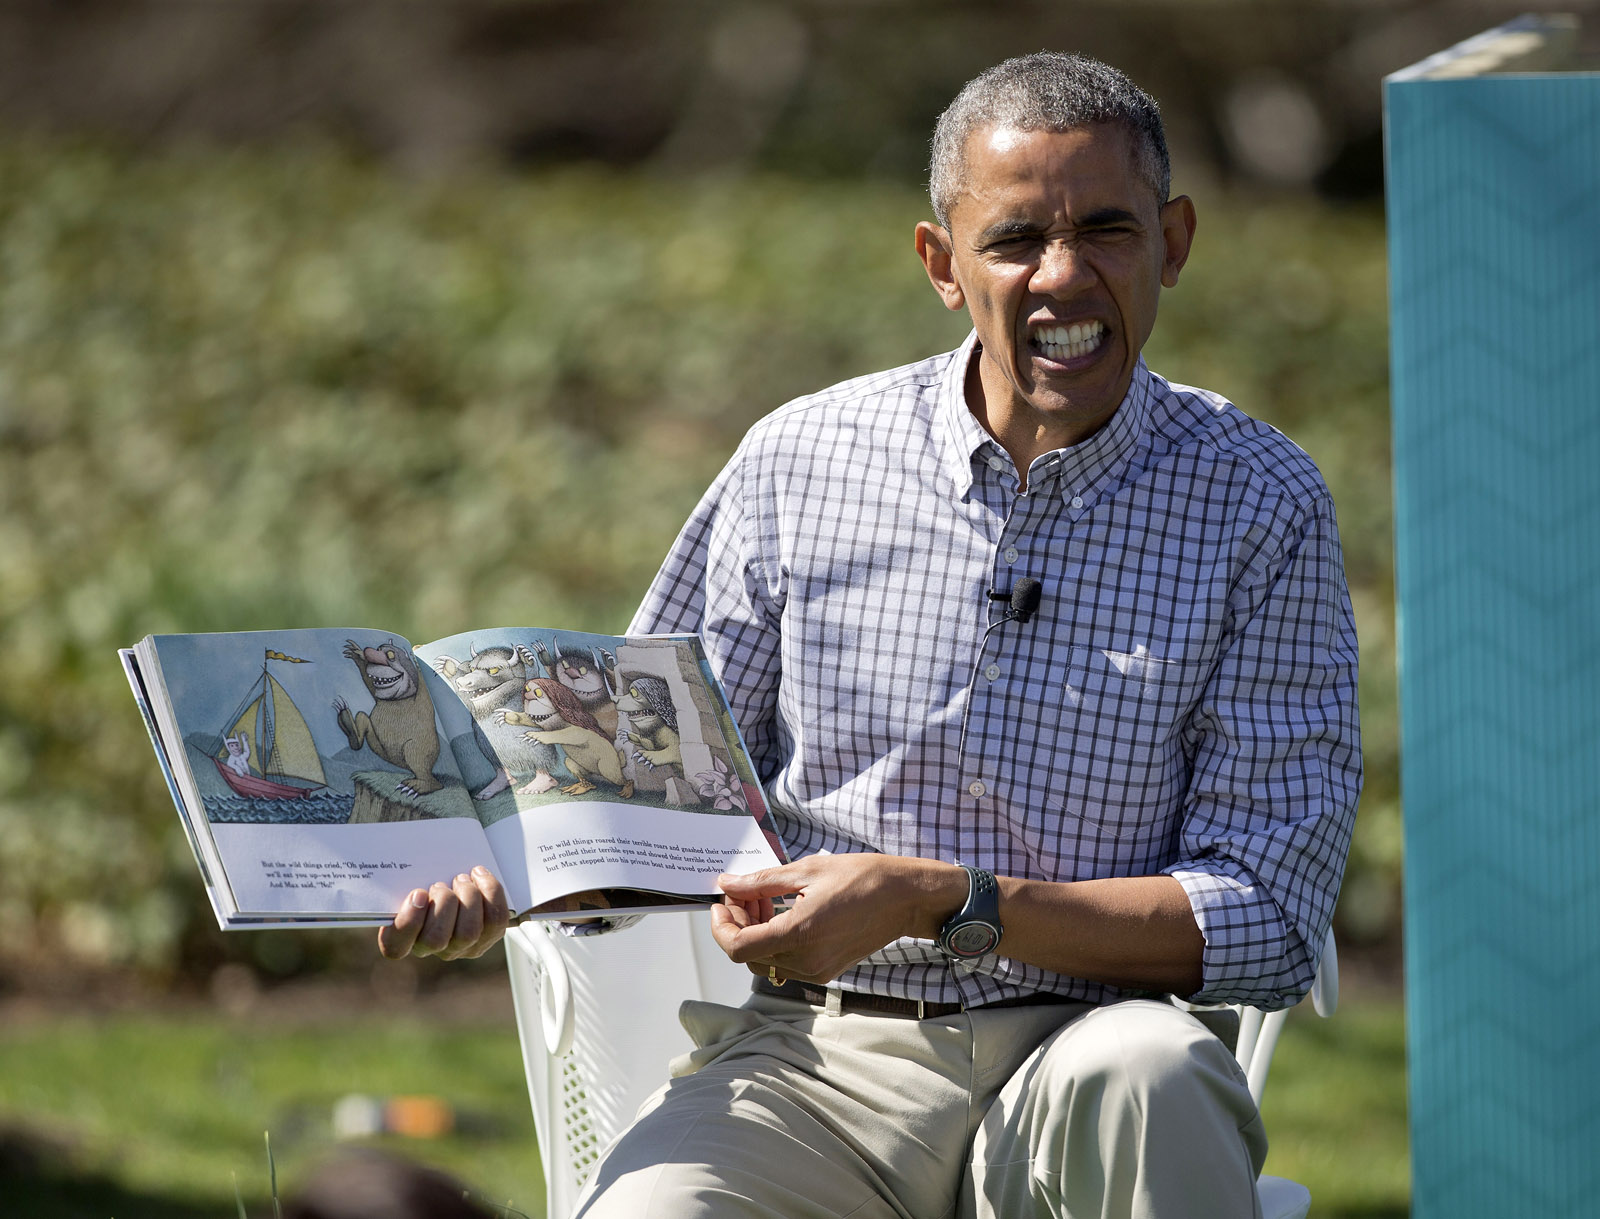 Pesky spring guest buzzes Obama's Easter egg roll (Video)